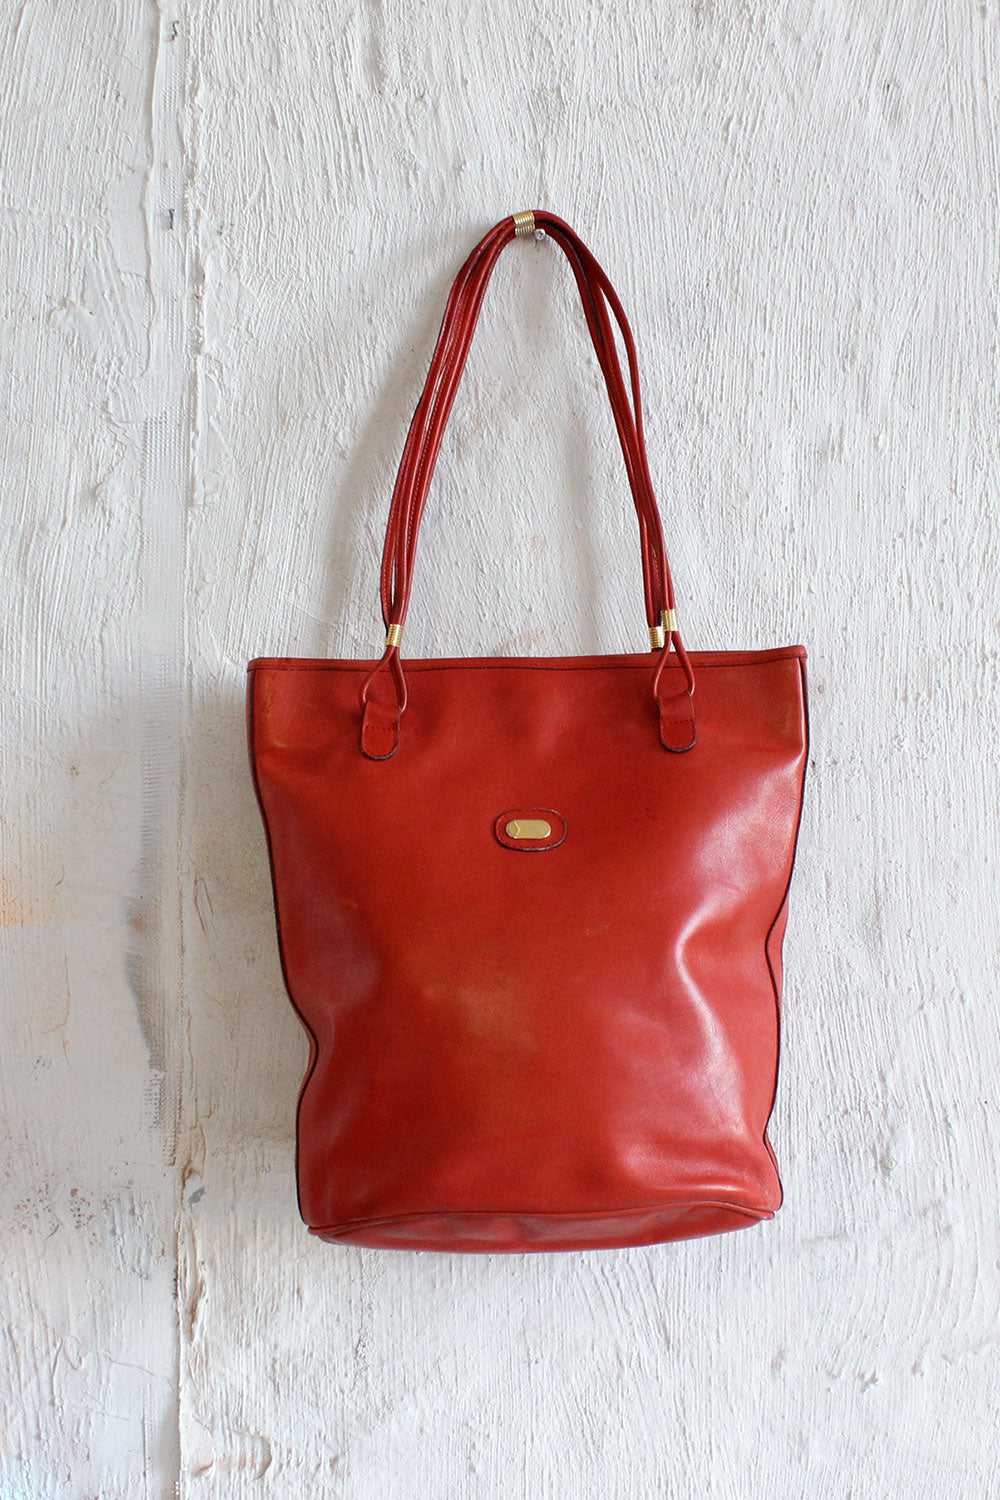 Vermillion 70s Leather Tote